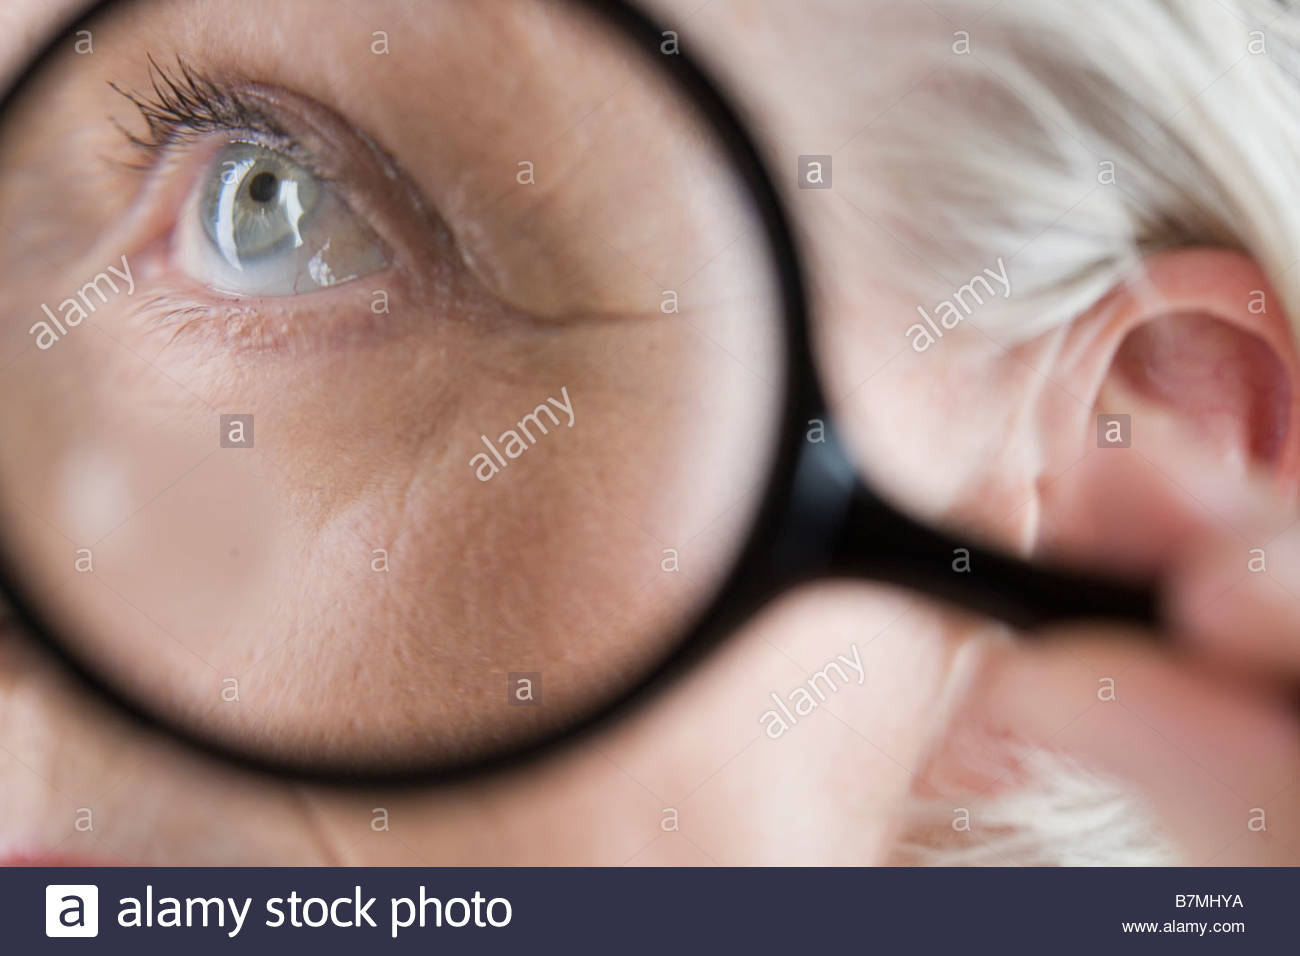 A senior woman looking through magnifying glass - Stock Image